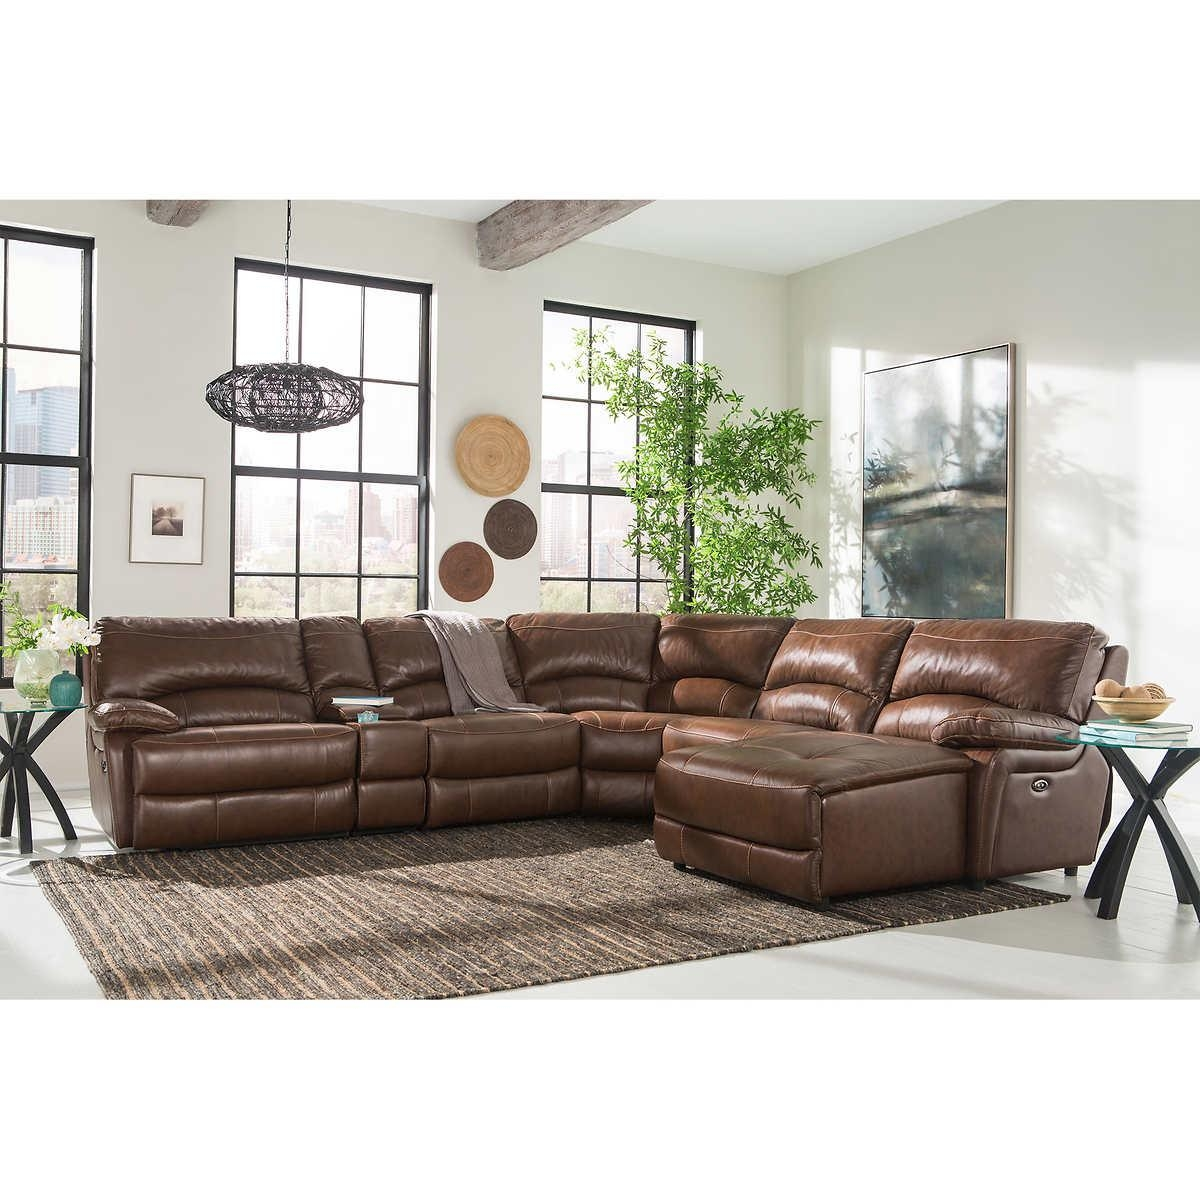 20 Best Ideas Leather Modular Sectional Sofas